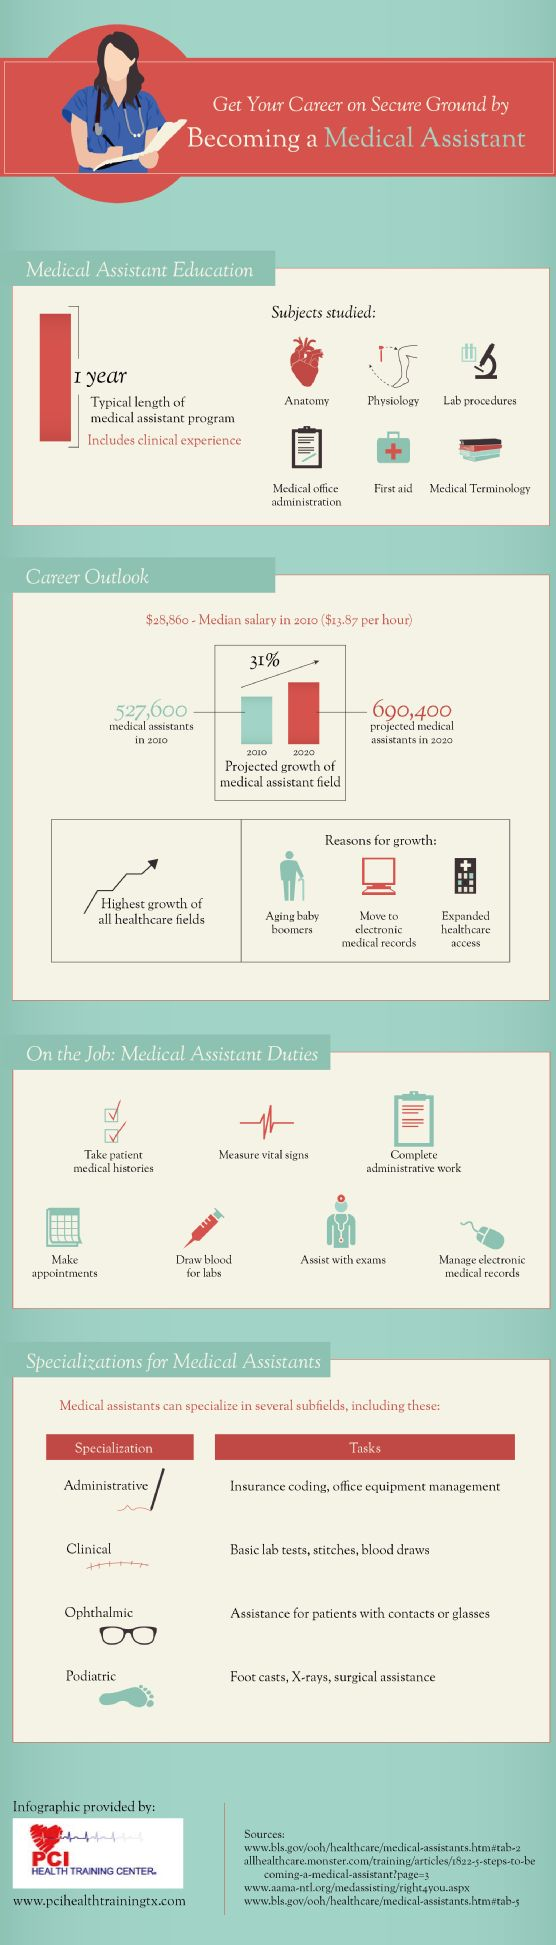 What does a Medical Assistant actually do on the job?